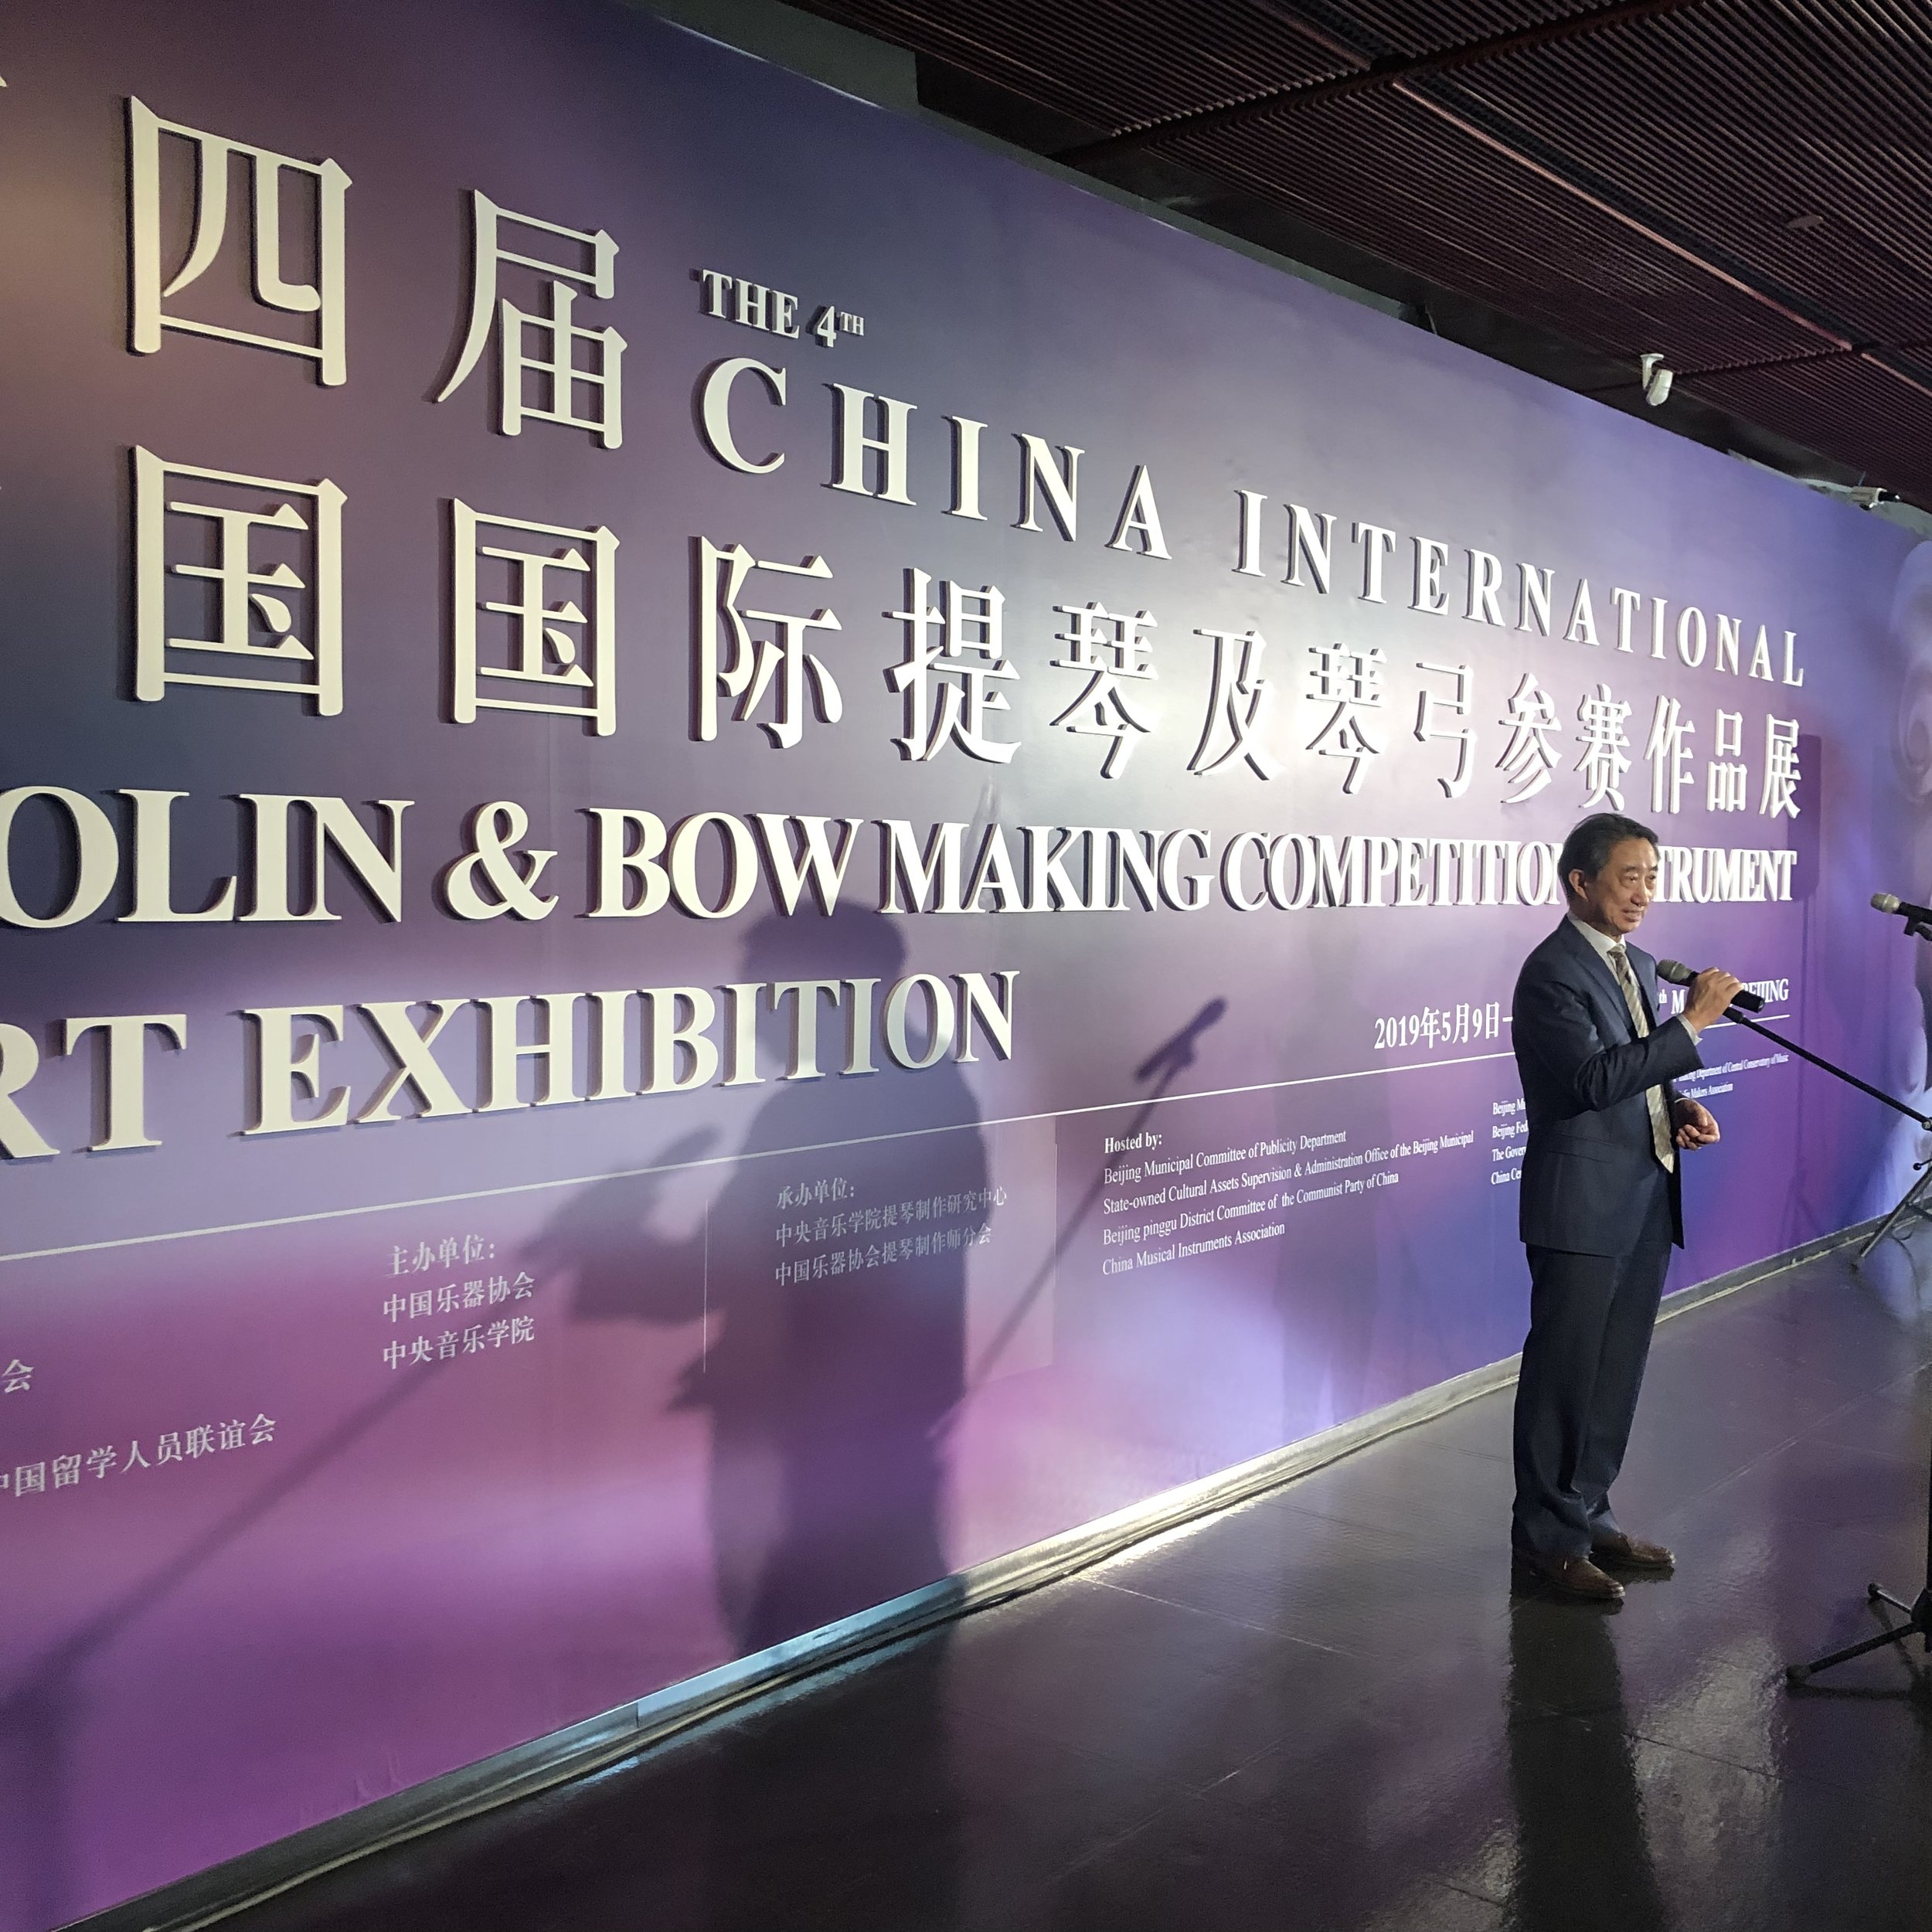 Zheng Quan addresses the media at the opening ceremony for the exhibit of the 4th China International Violin and Bow Making Competition.